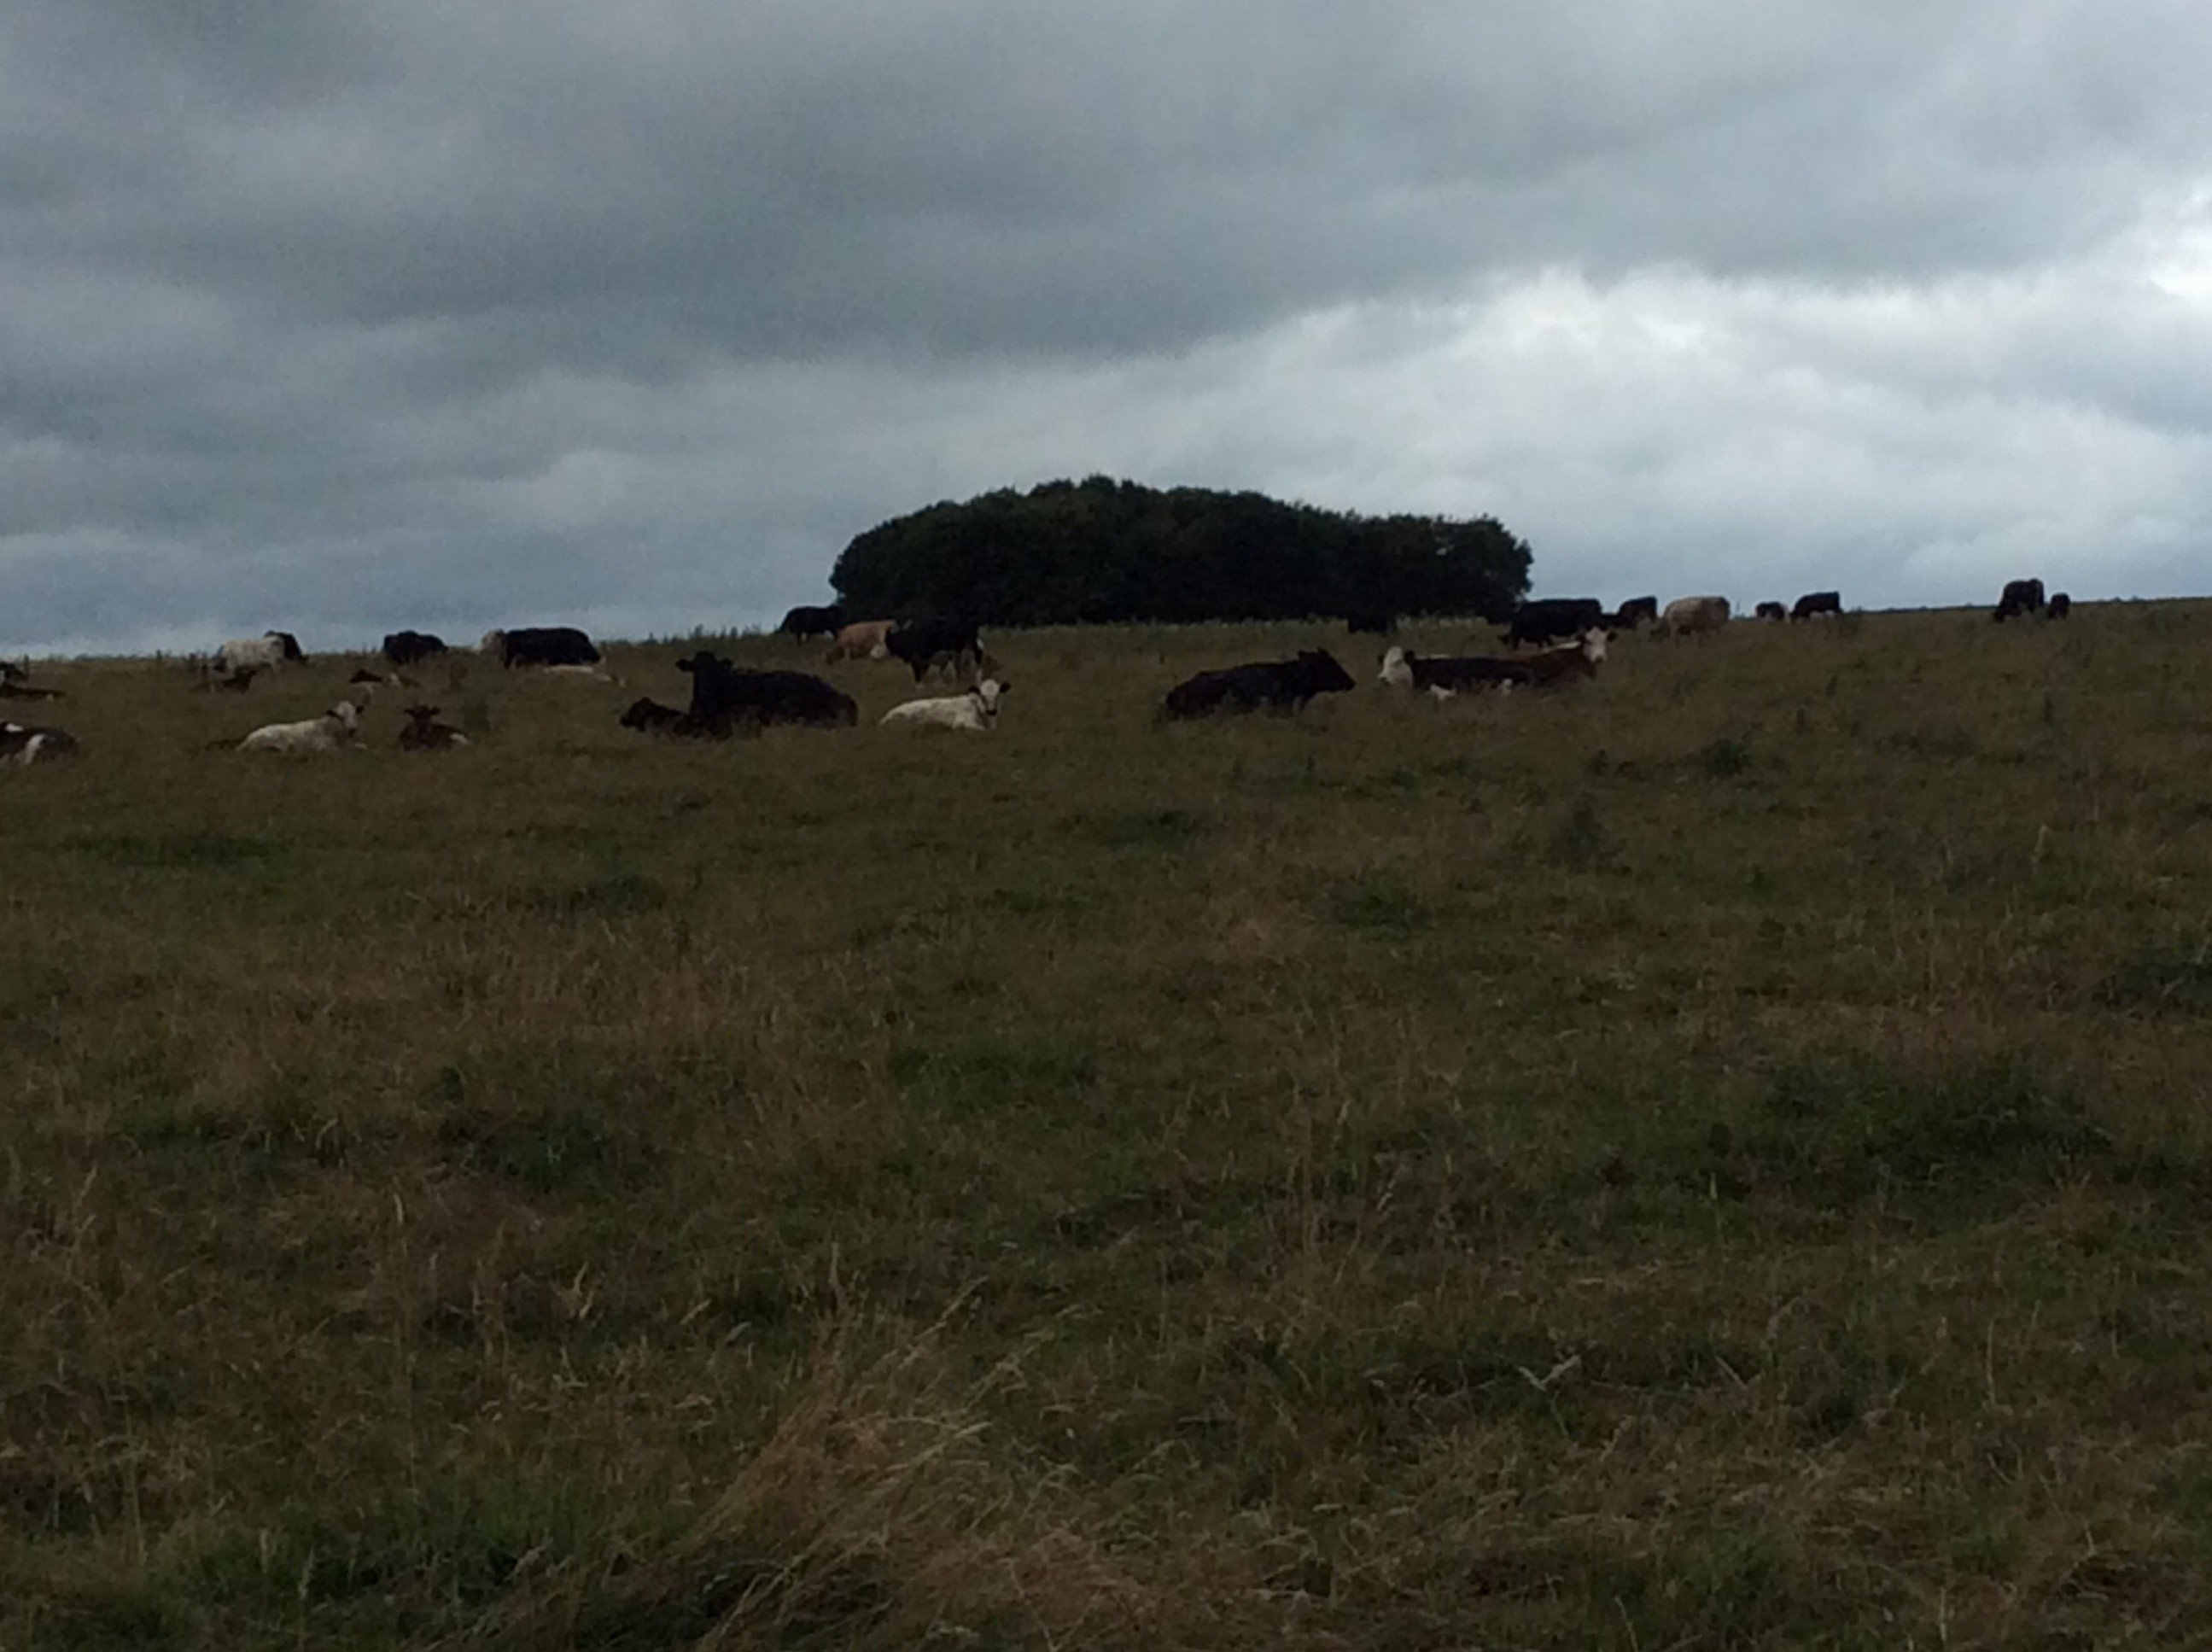 The lovely  countryside around Haddon. Cows and sheep graze everywhere. It's right out of a Jane Austen novel.l